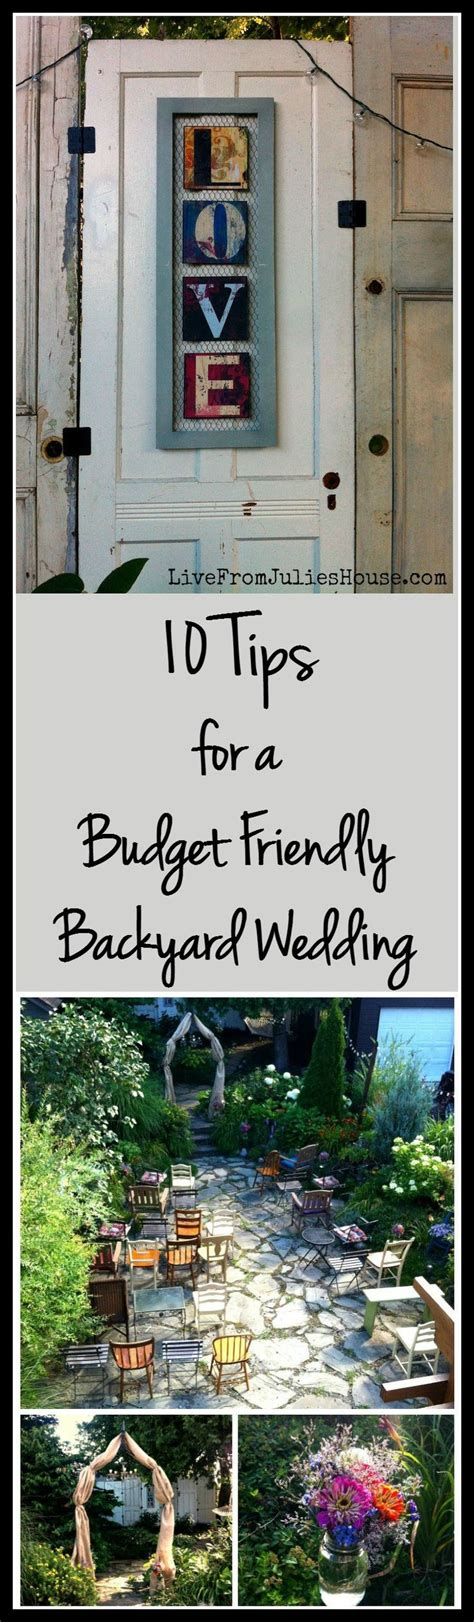 how to throw a backyard wedding how to throw a budget friendly backyard wedding cheap wedding tips welcome to